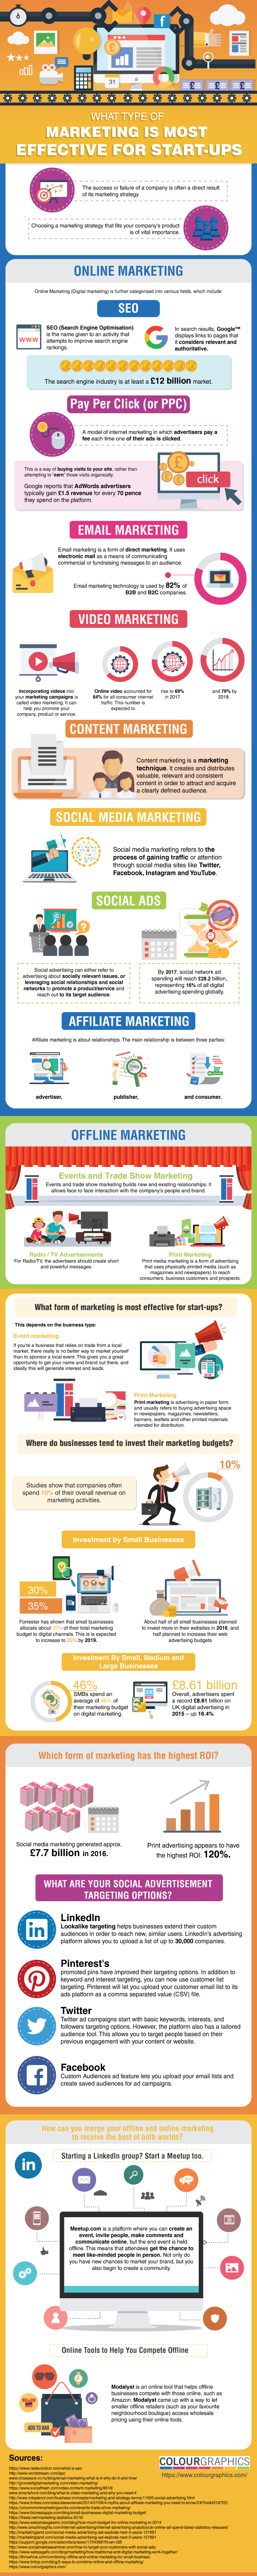 What type of marketing is most effective for start ups